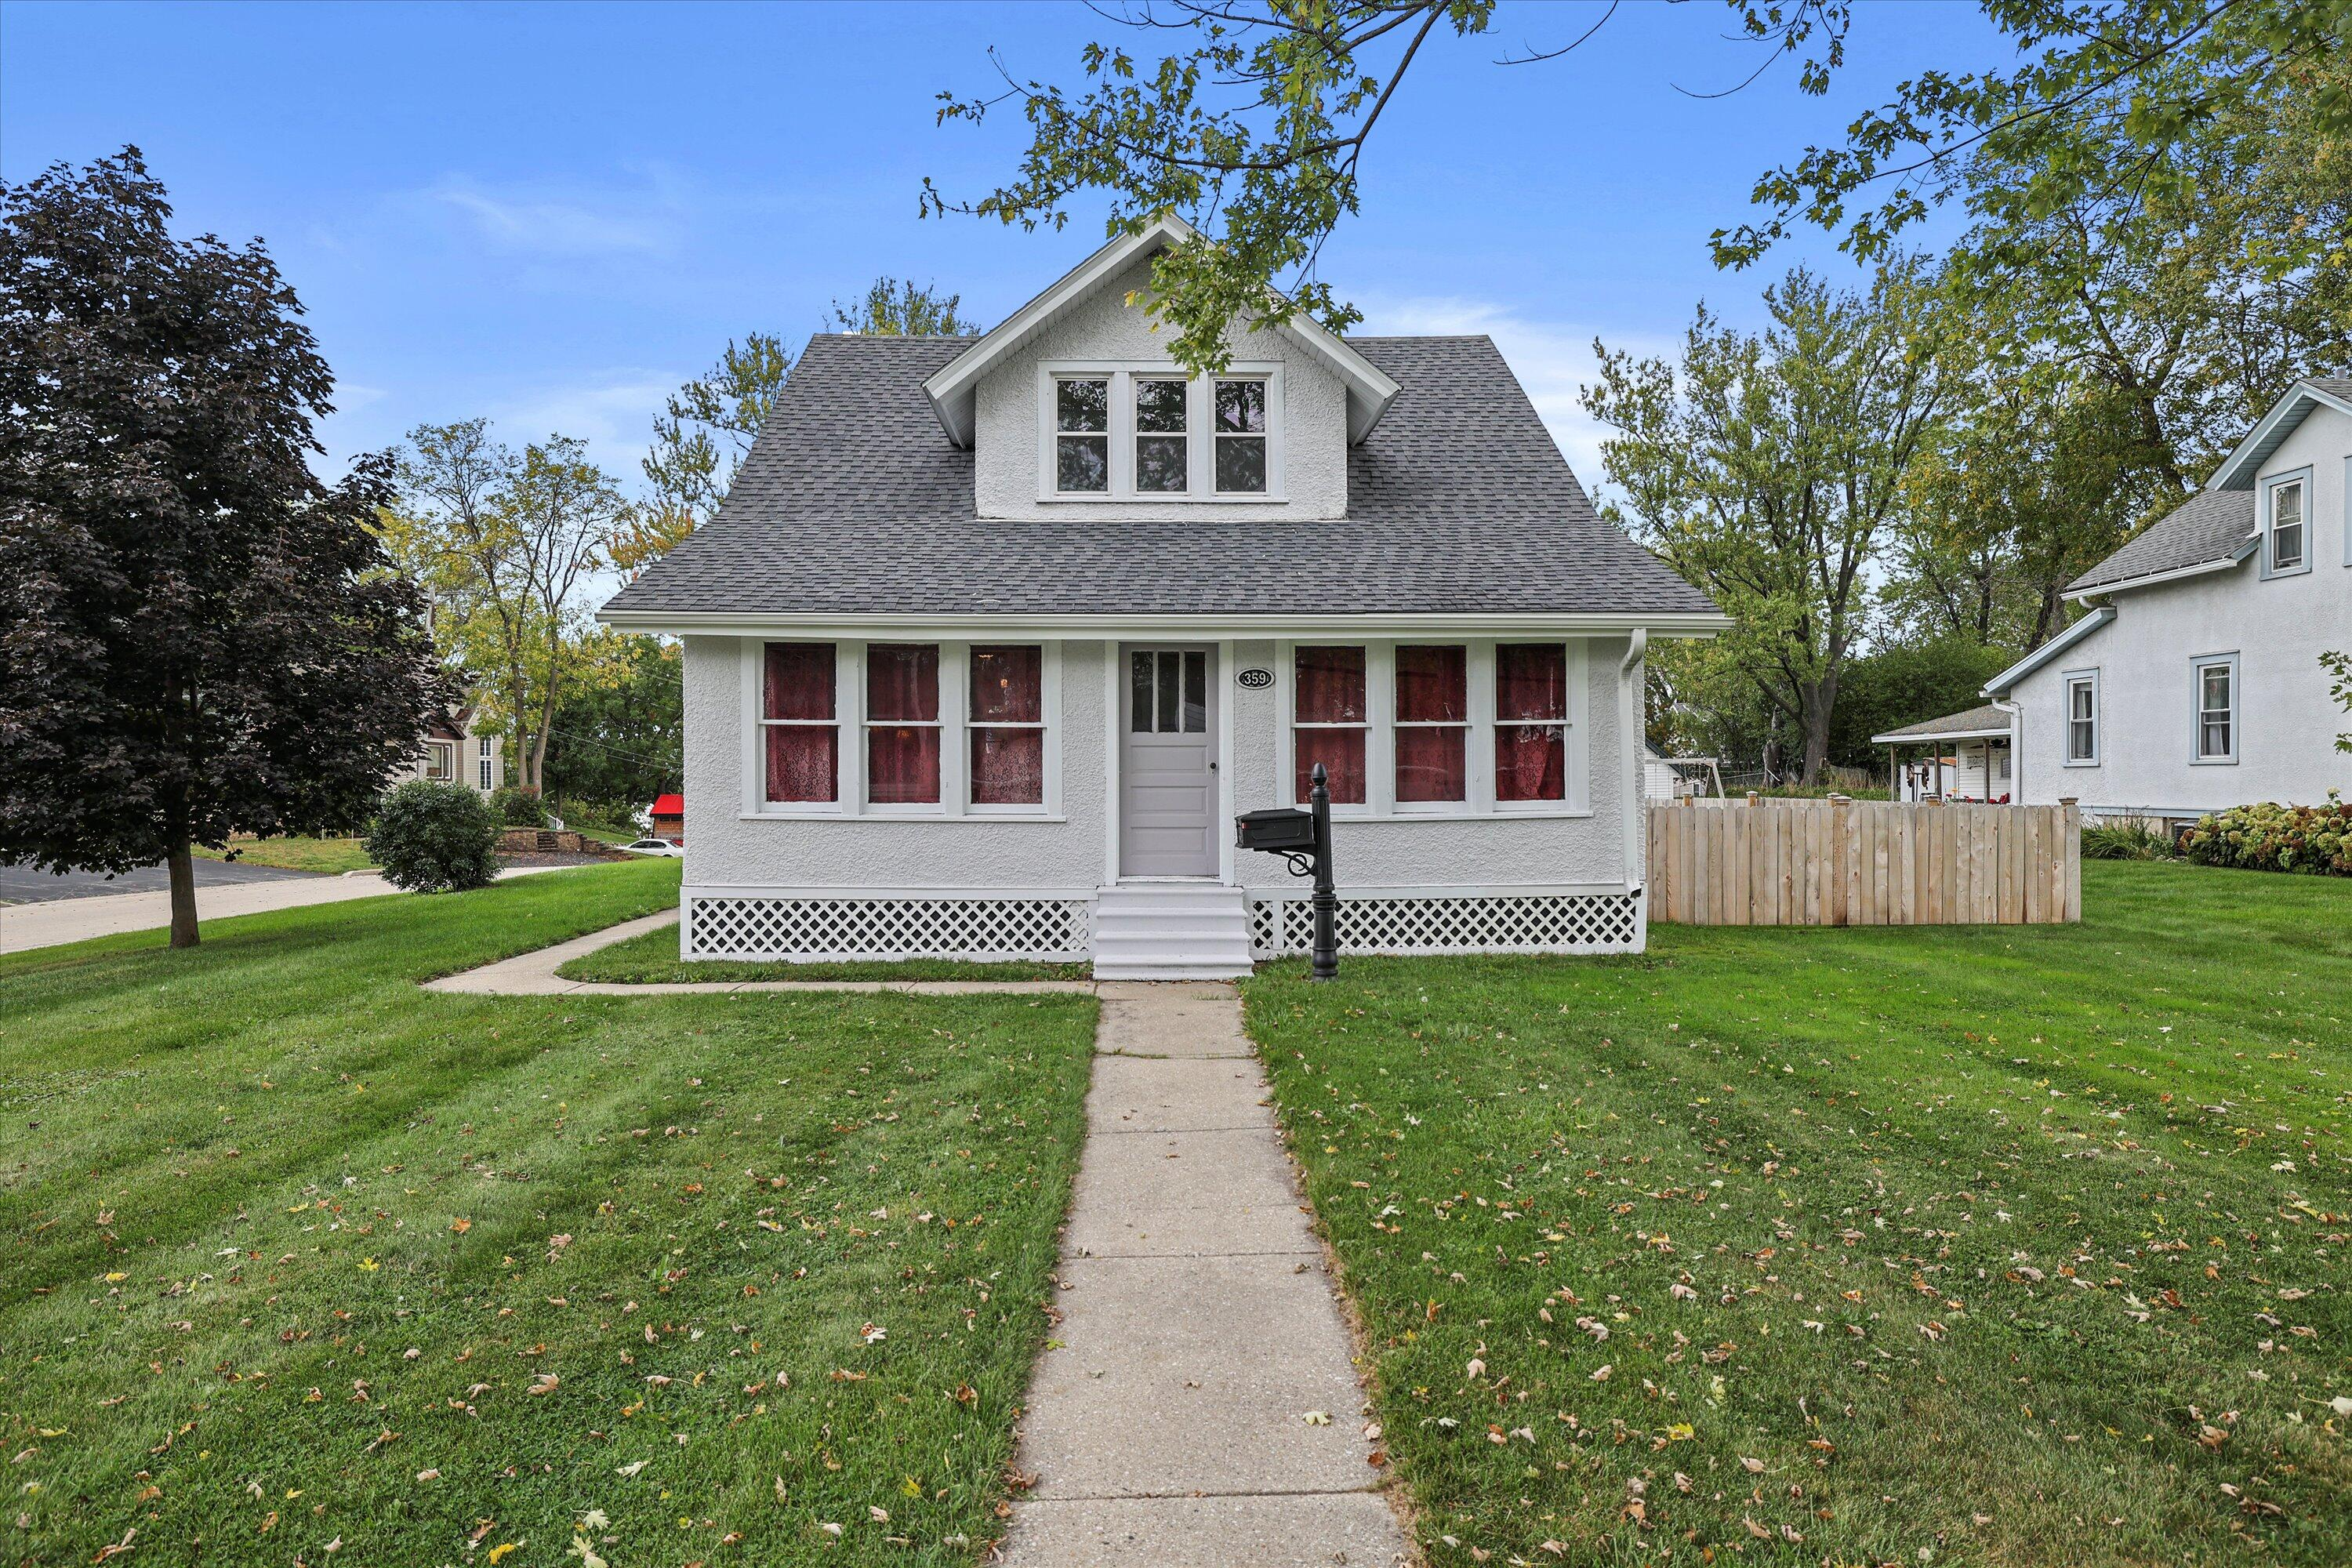 359 Prospect Ave, Pewaukee, Wisconsin 53072, 3 Bedrooms Bedrooms, 7 Rooms Rooms,1 BathroomBathrooms,Single-Family,For Sale,Prospect Ave,1766538